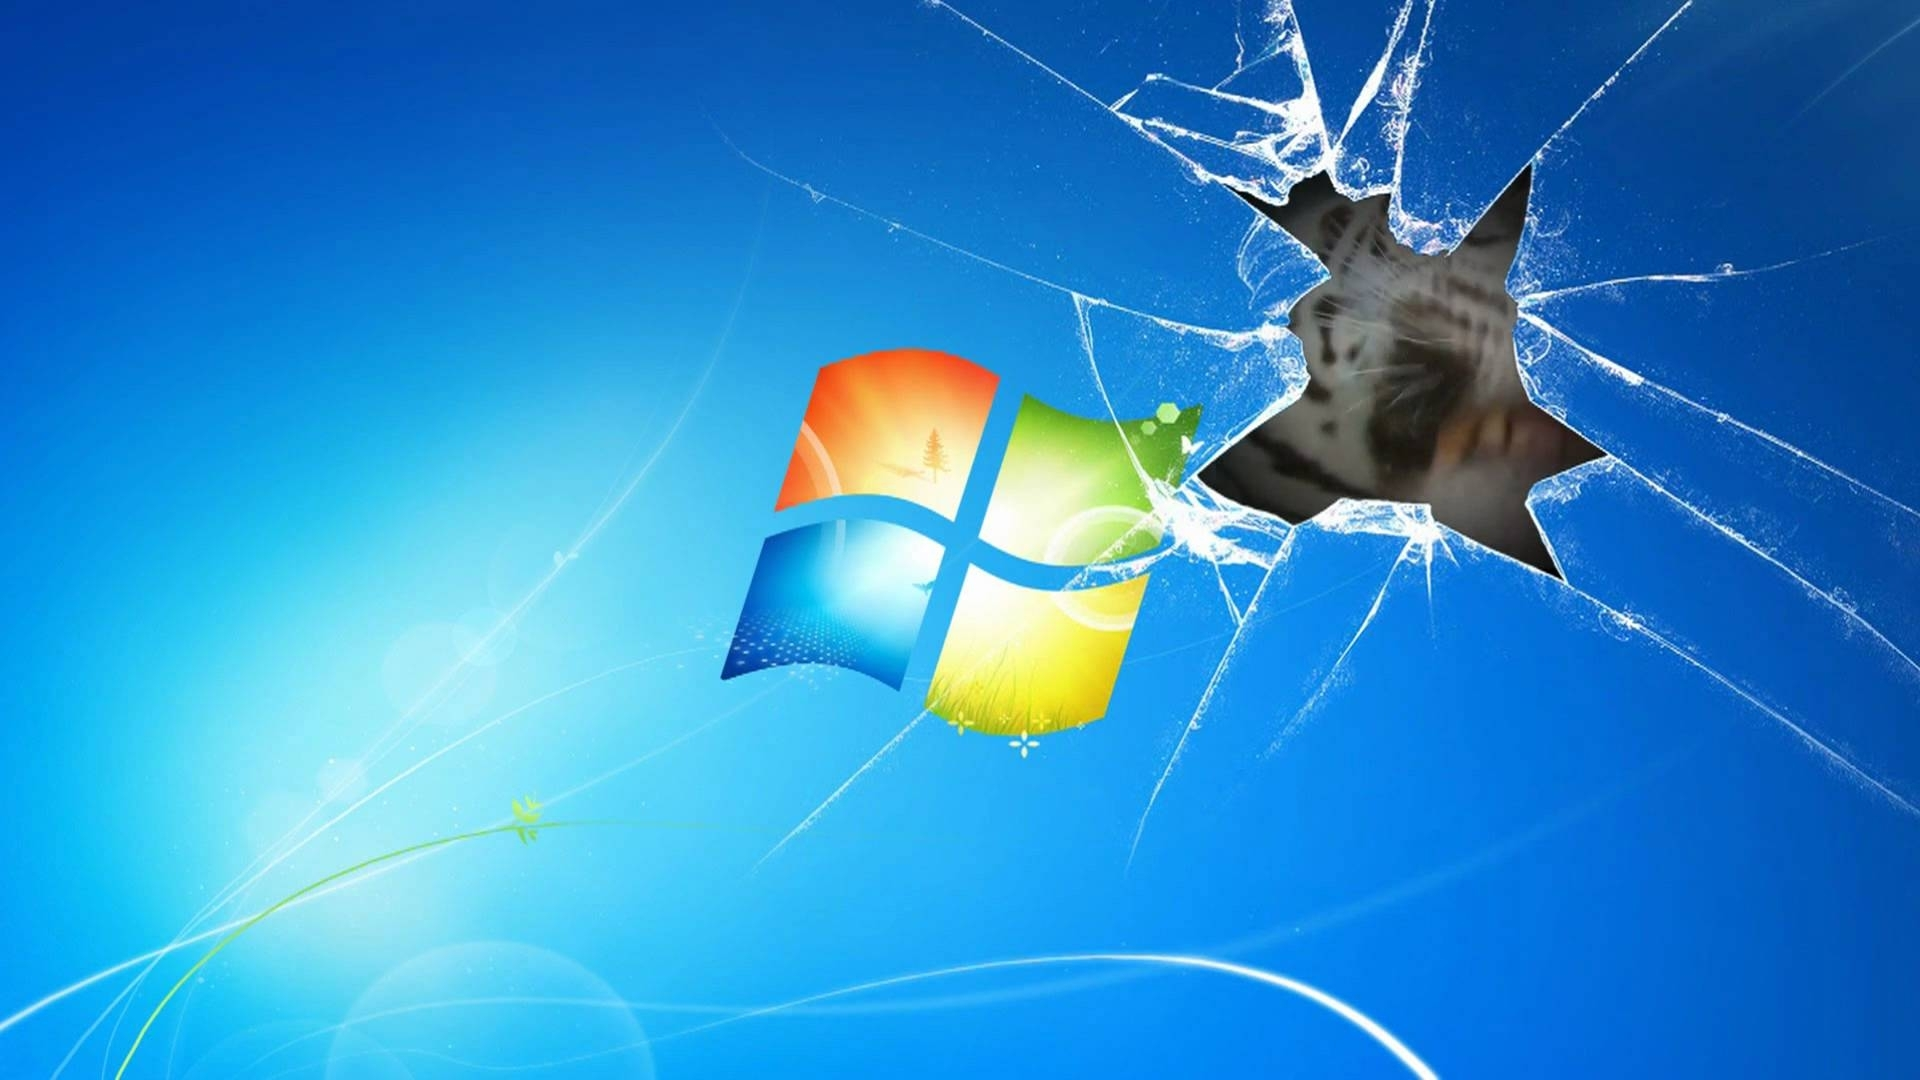 windows 7 wallpaper animated tiger on broken screen - youtube